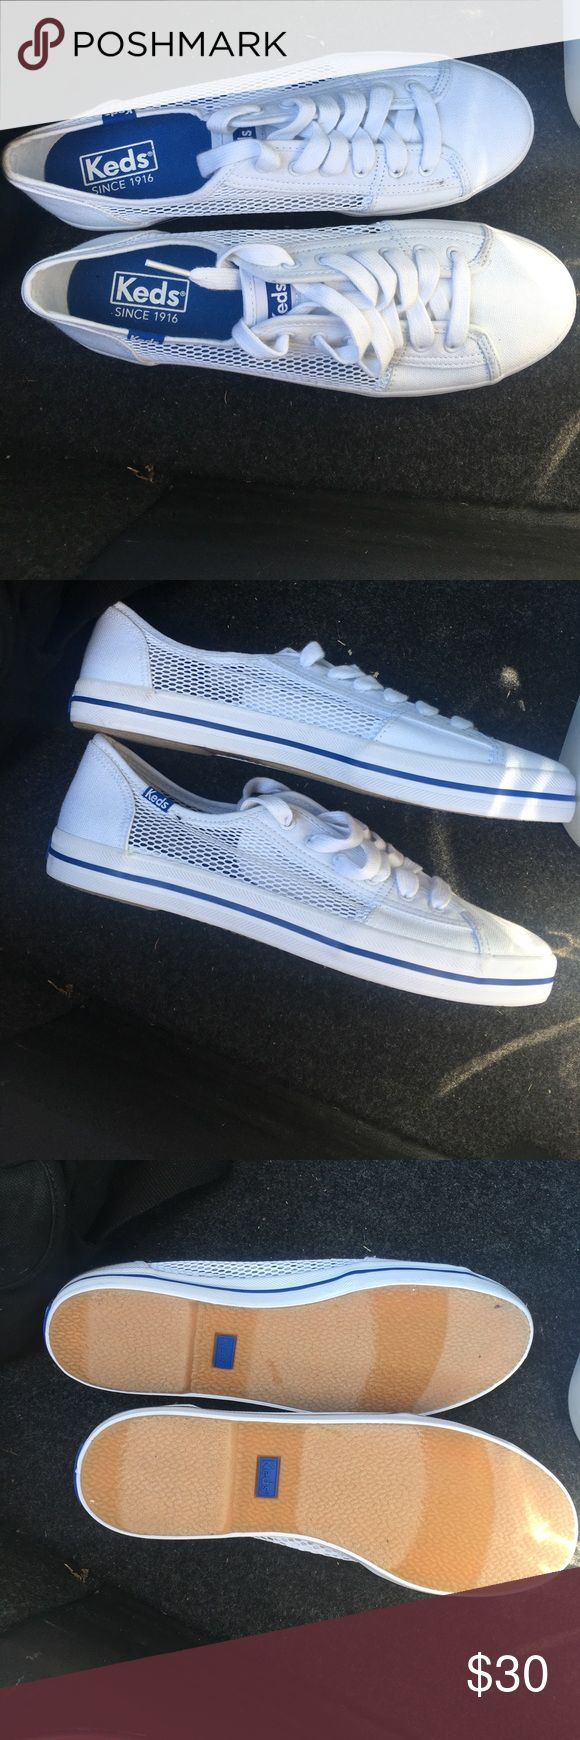 NEW-White Ked sneakers size 7 White comfy classic Ked sneakers. Never been worn. Size 7. Keds Shoes Sneakers